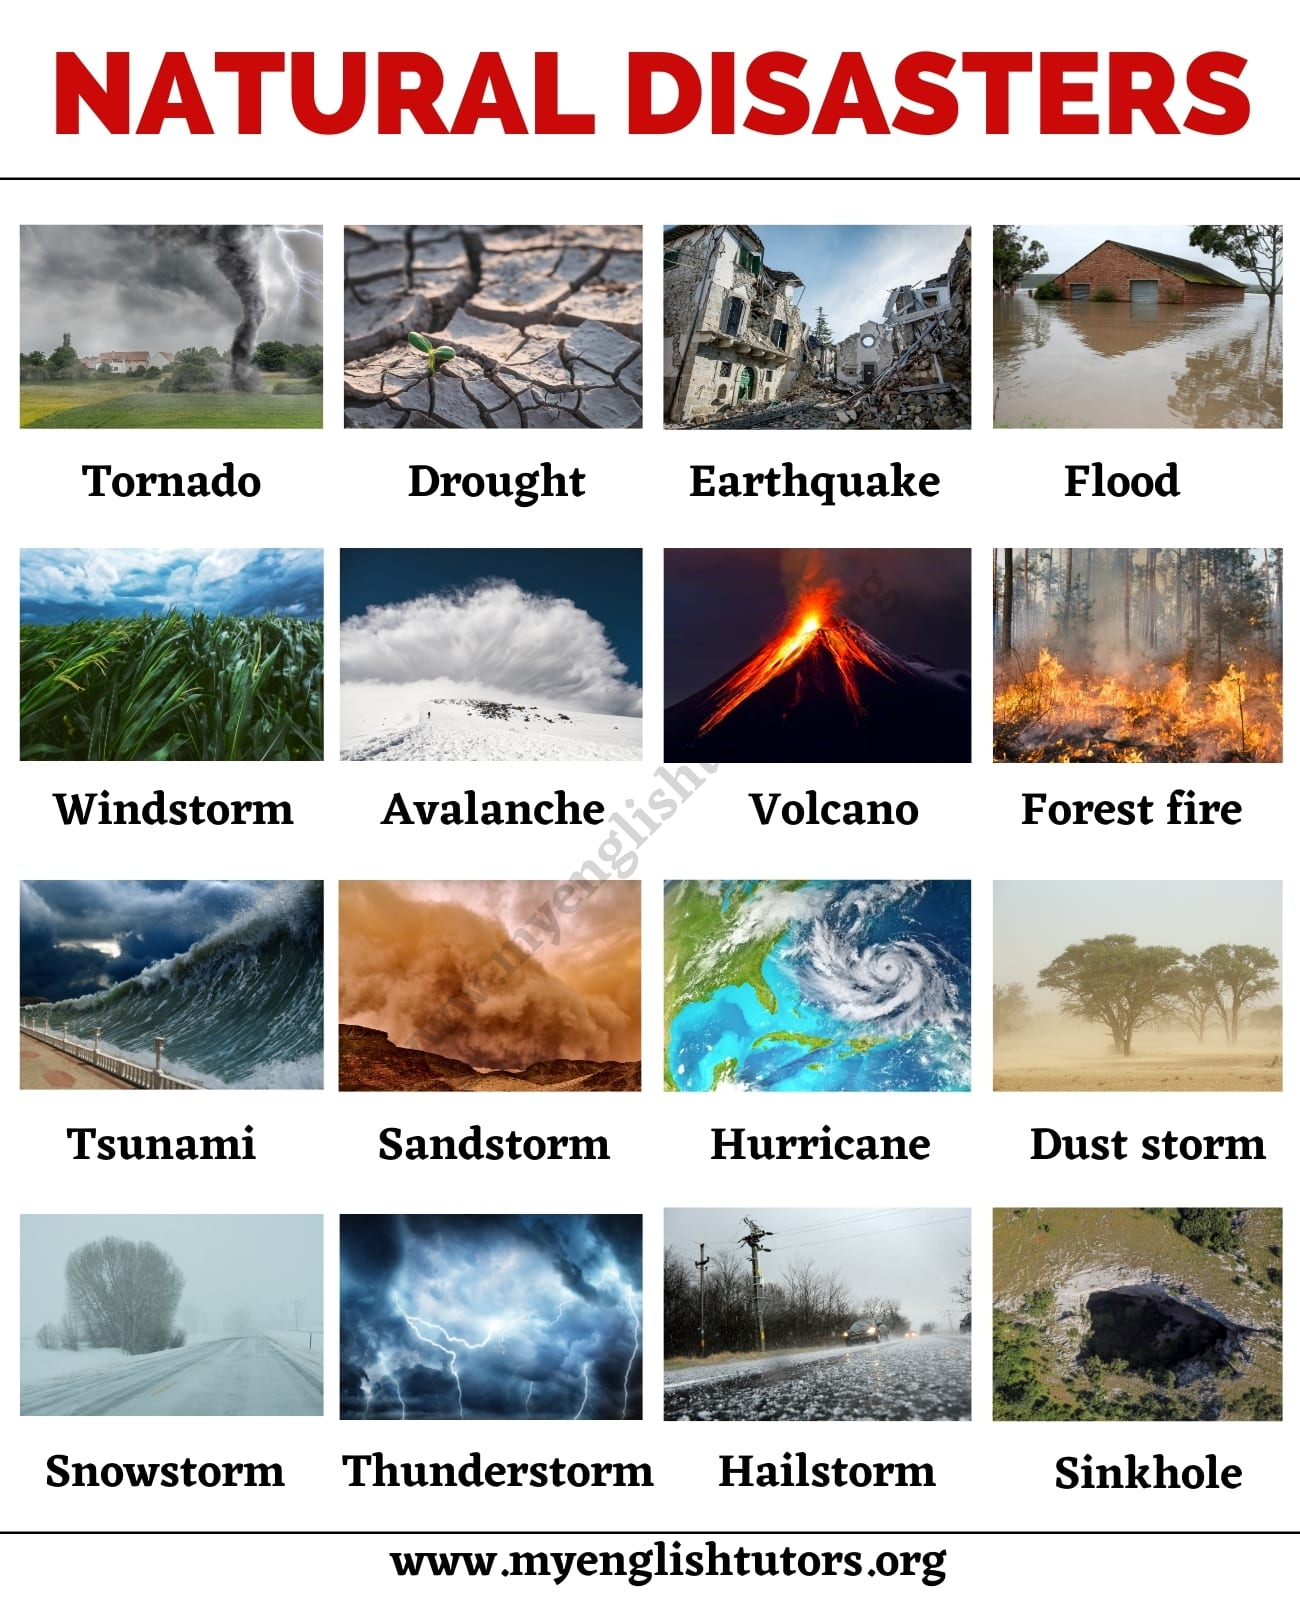 Natural Disasters: List of Common Natural Disasters with the Picture